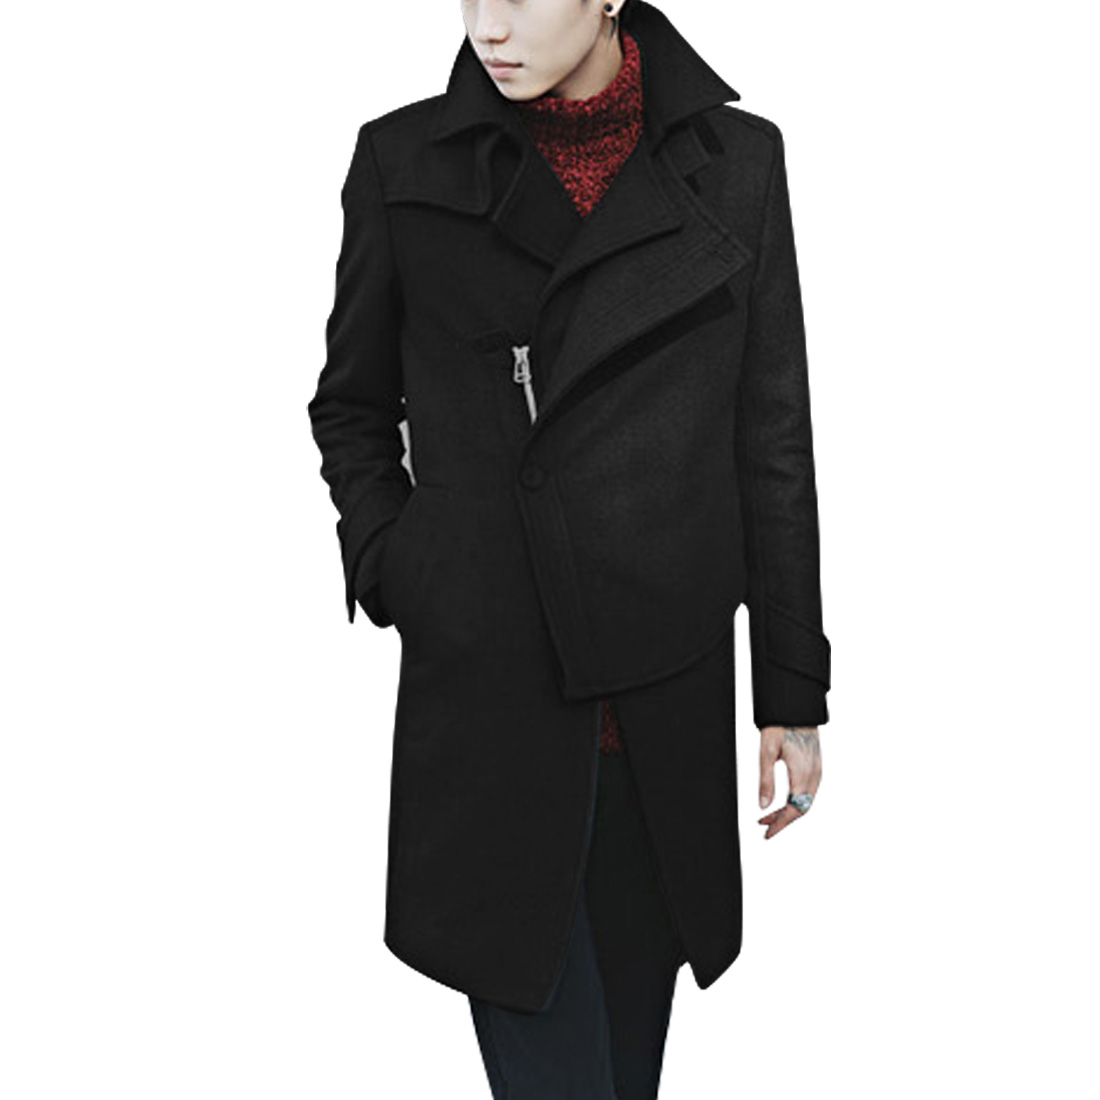 Men Inclined Zipper Long Trench Black Worsted Overcoat M